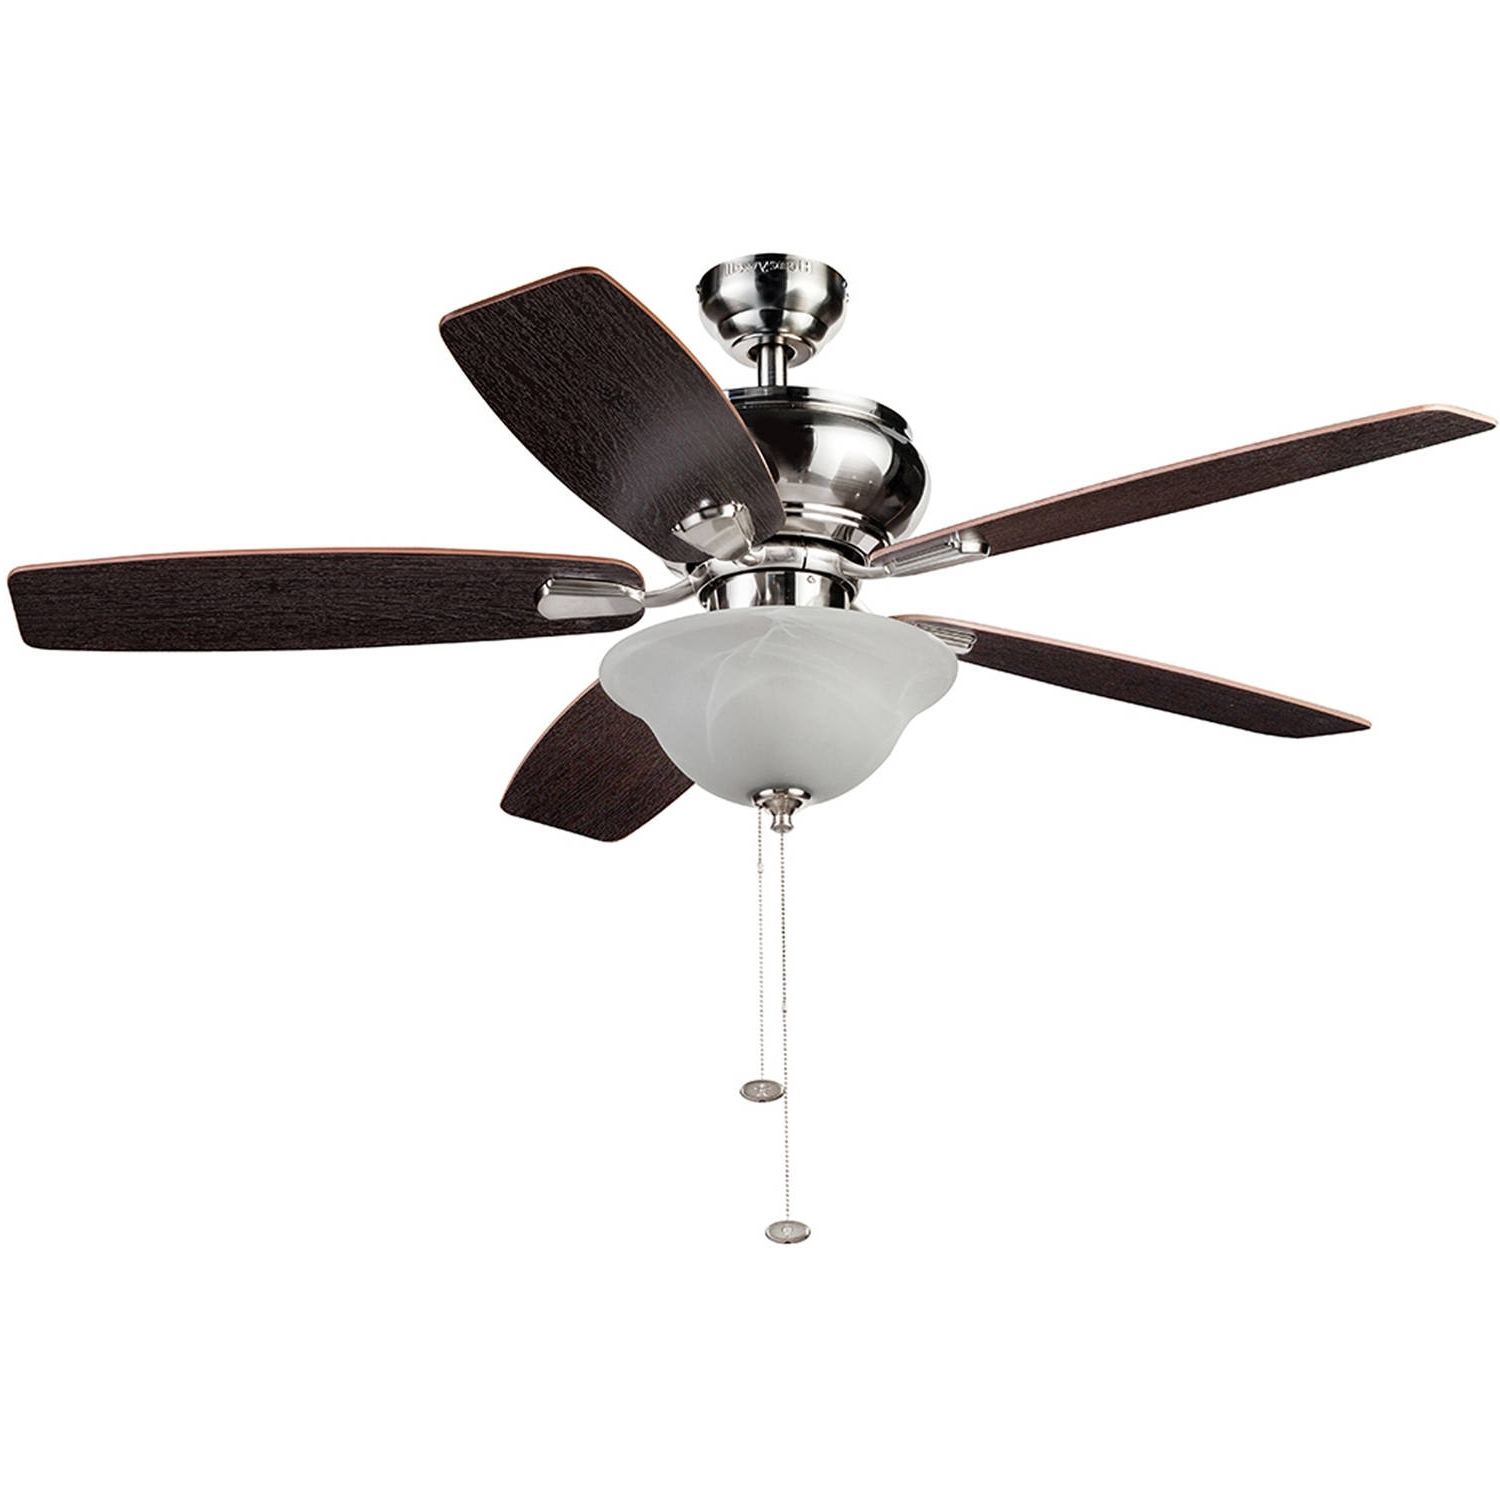 Most Recent Outdoor Ceiling Fans With Lights At Walmart With Regard To Ceiling Fans : Walmart Ceiling Fans With Lights Menards Light (View 6 of 20)